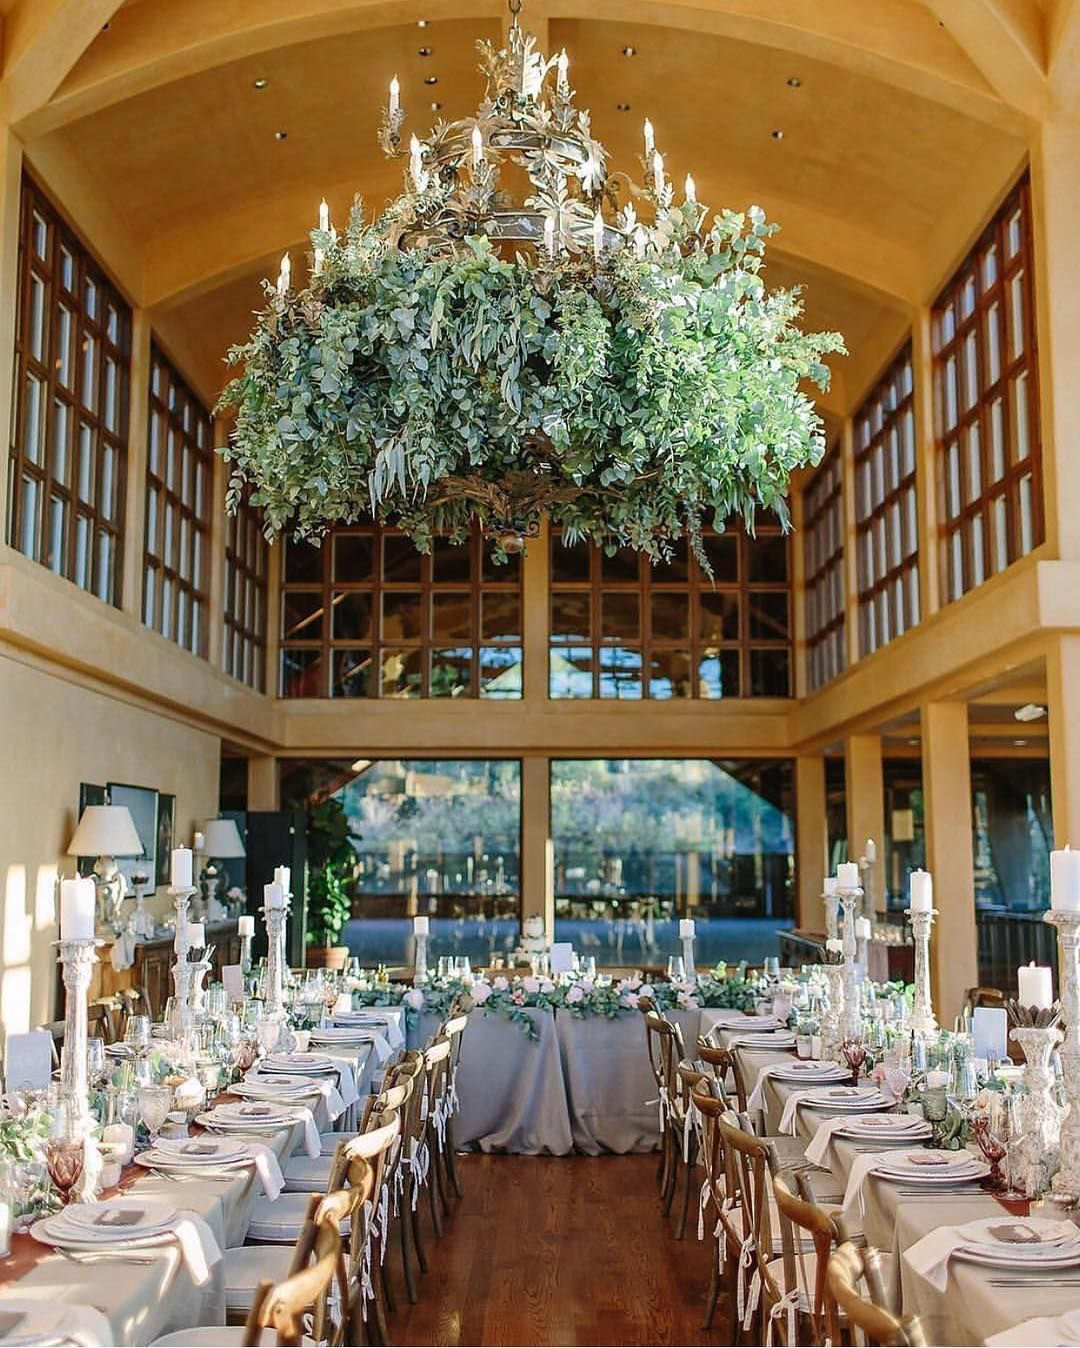 2 023 Likes 32 Comments La Tavola Fine Linen Latavolalinen On Instagram Heavenly Details From Ashleymauritsonevents And Revelfloral Table Decorations